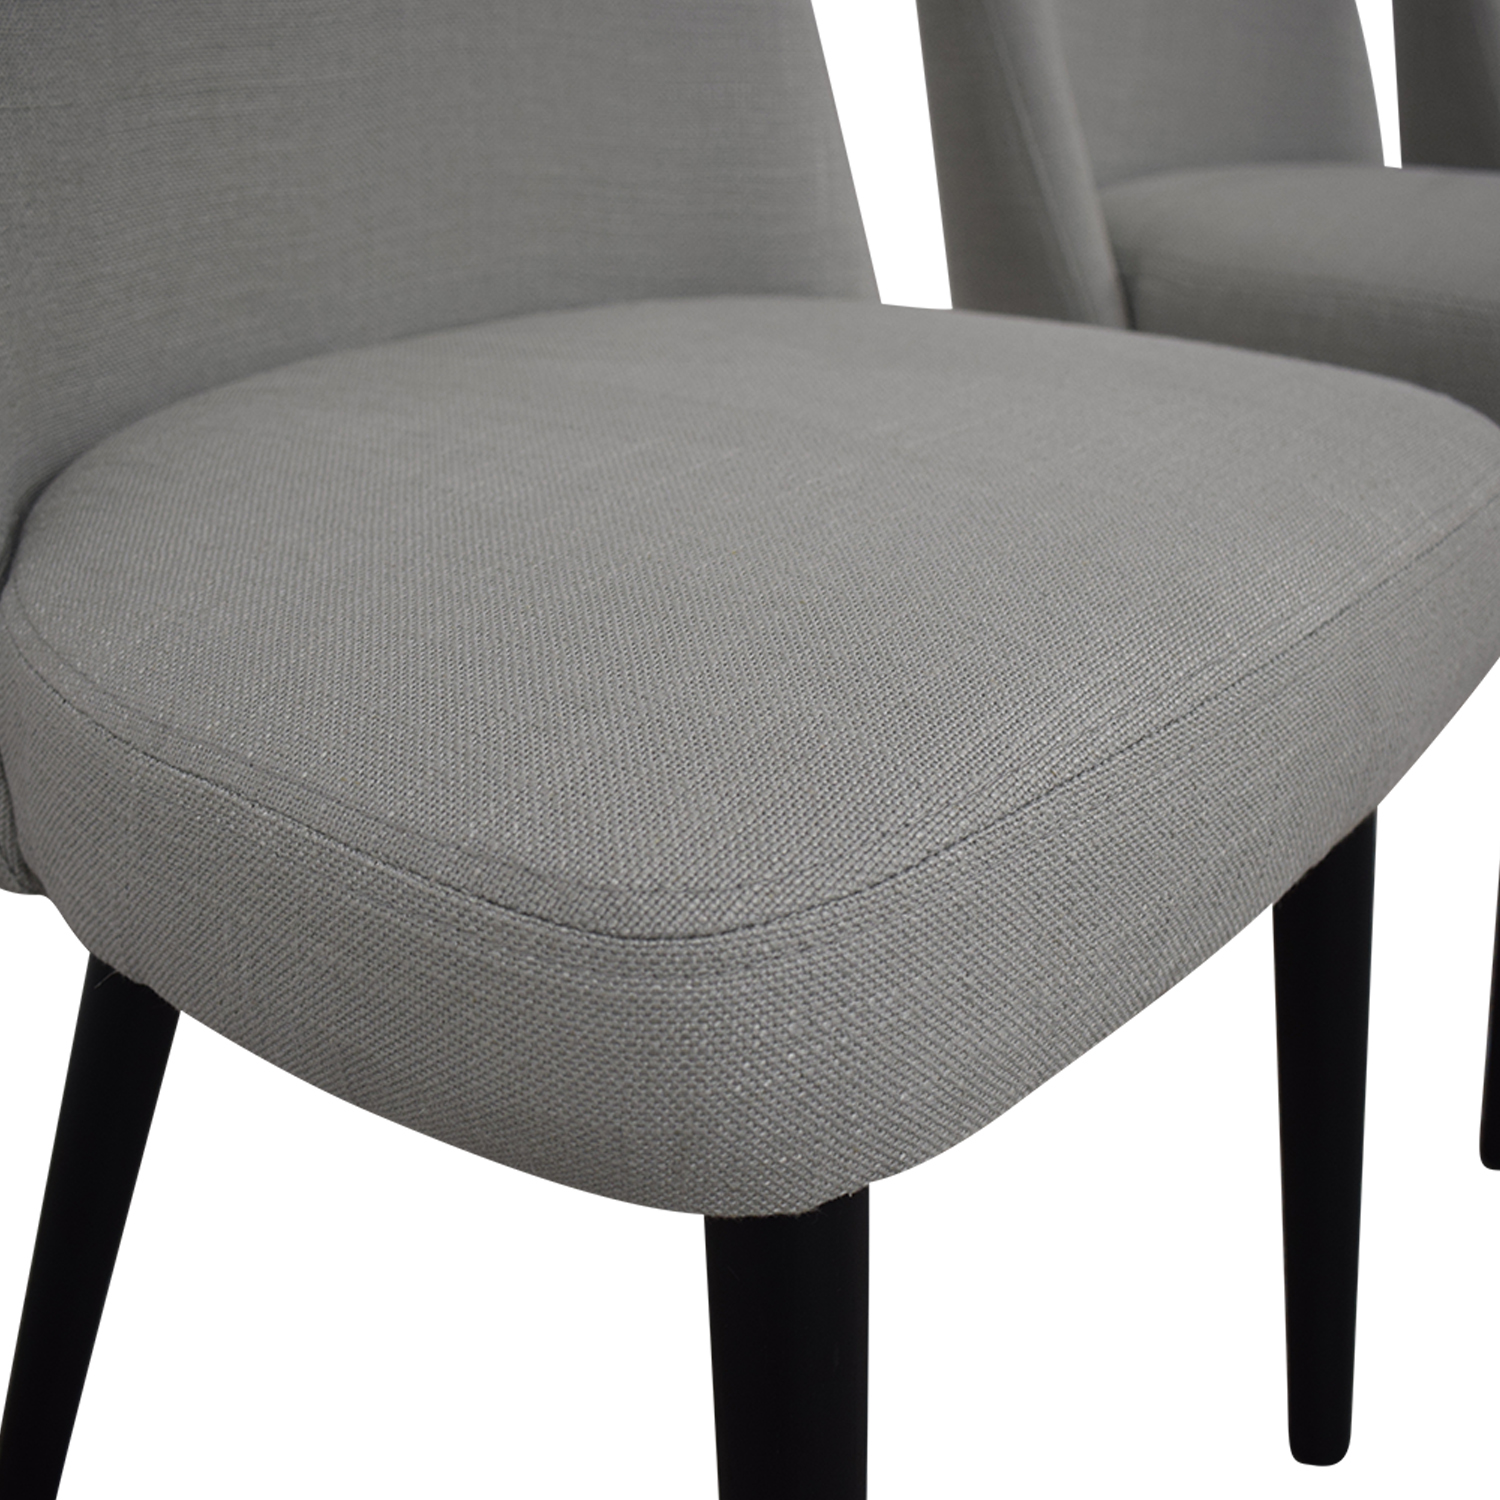 Interior Define Dylan Grey Dining Chairs gray